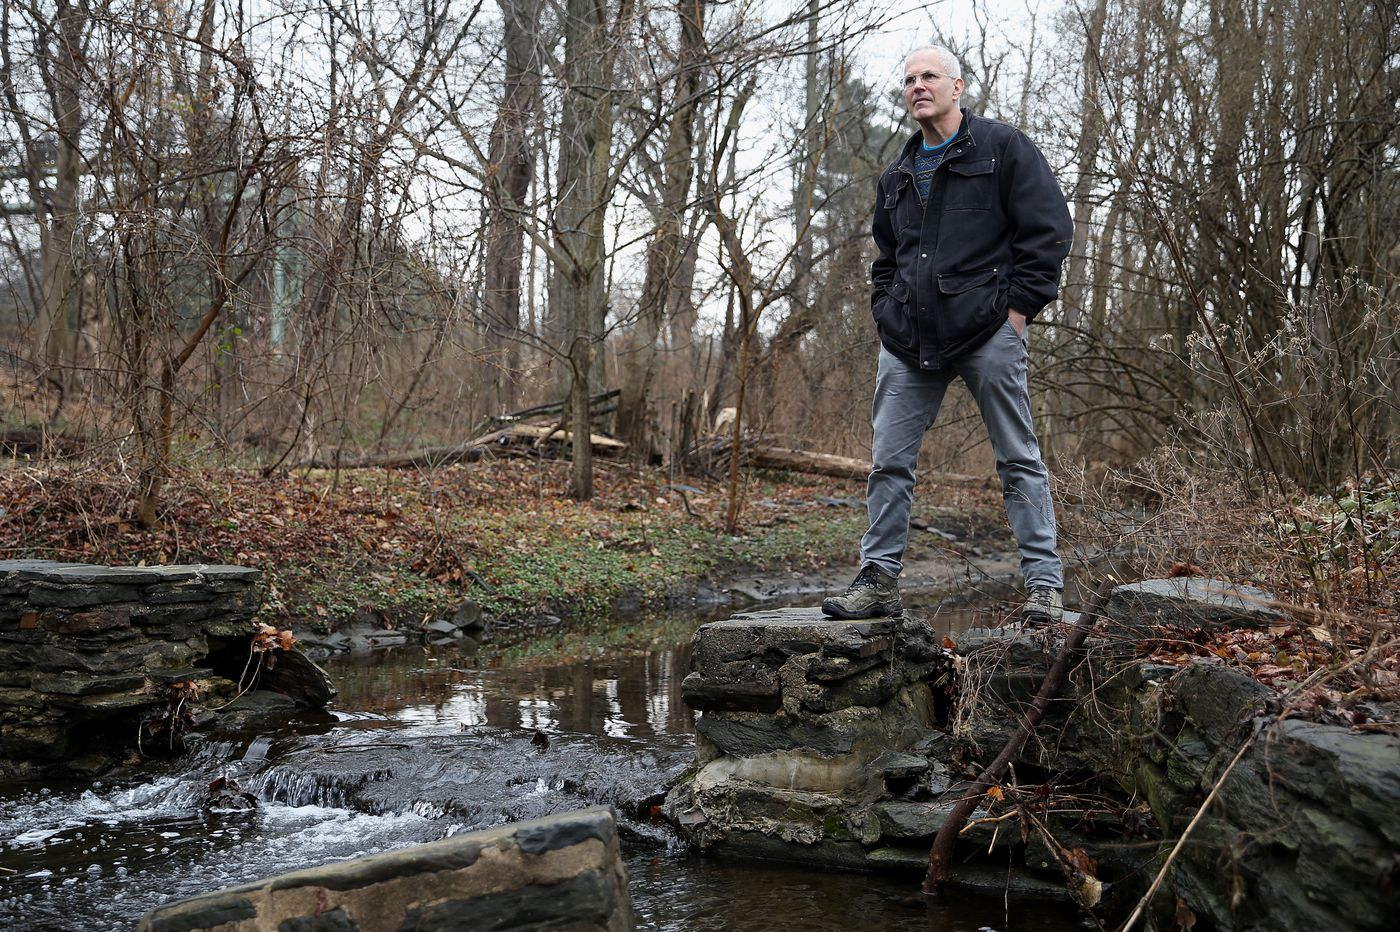 Adam Levine, the sewer expert, tracks Philly's hidden streams